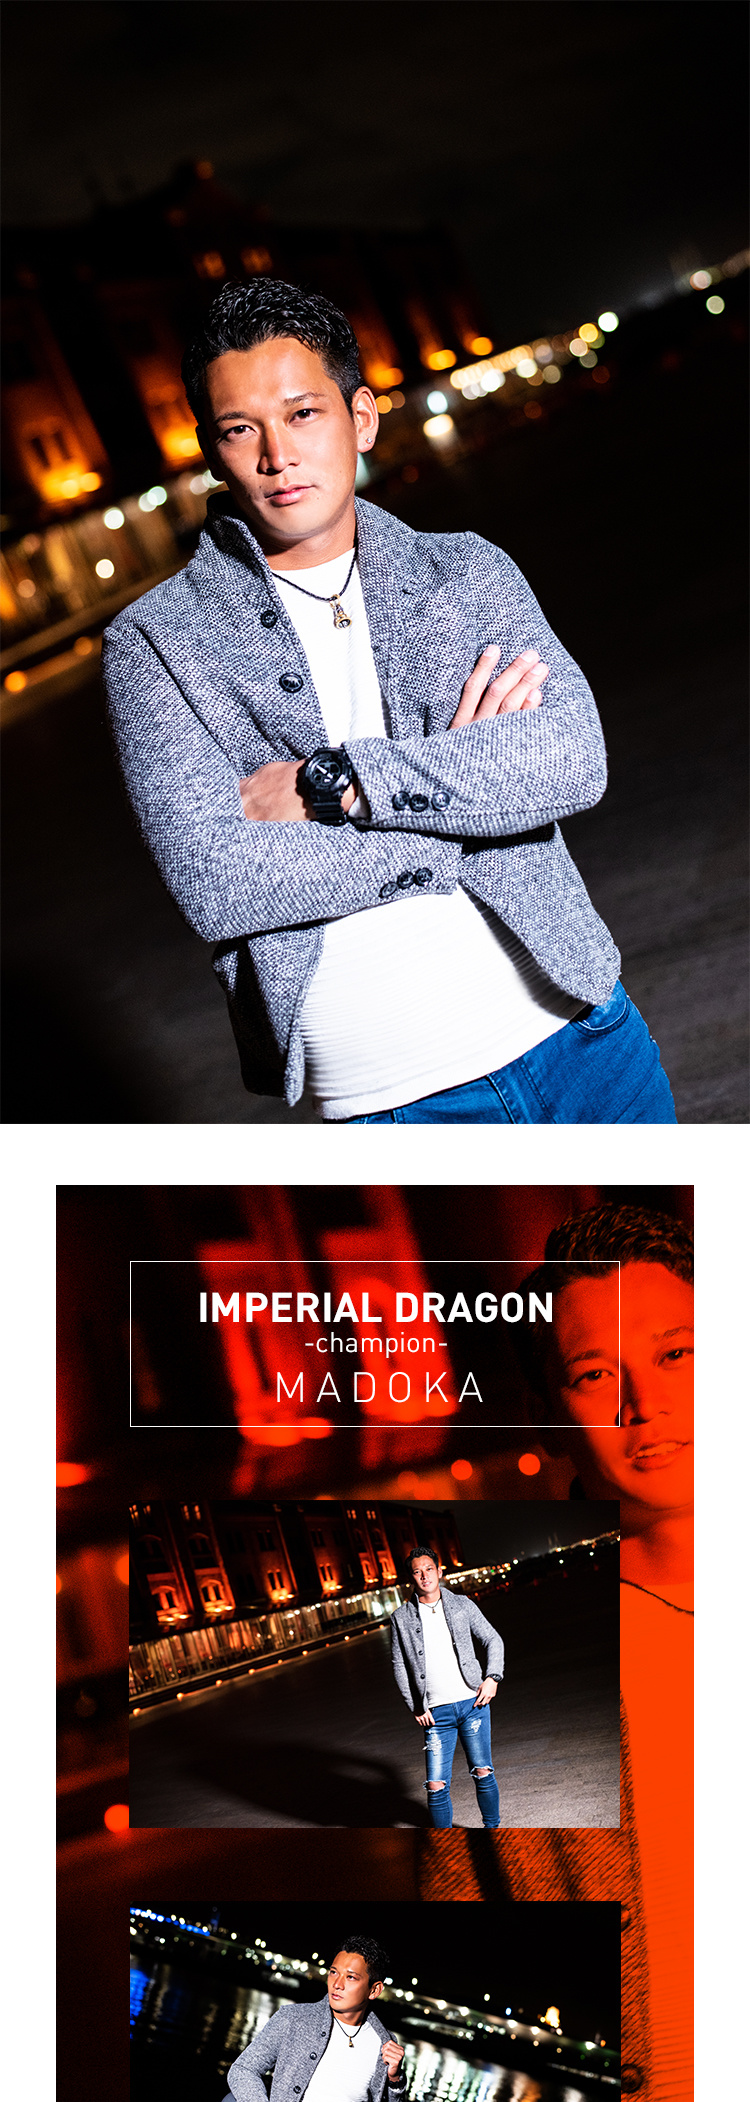 「IMPERIAL DRAGON -champion- 」を支える漢が登場!!